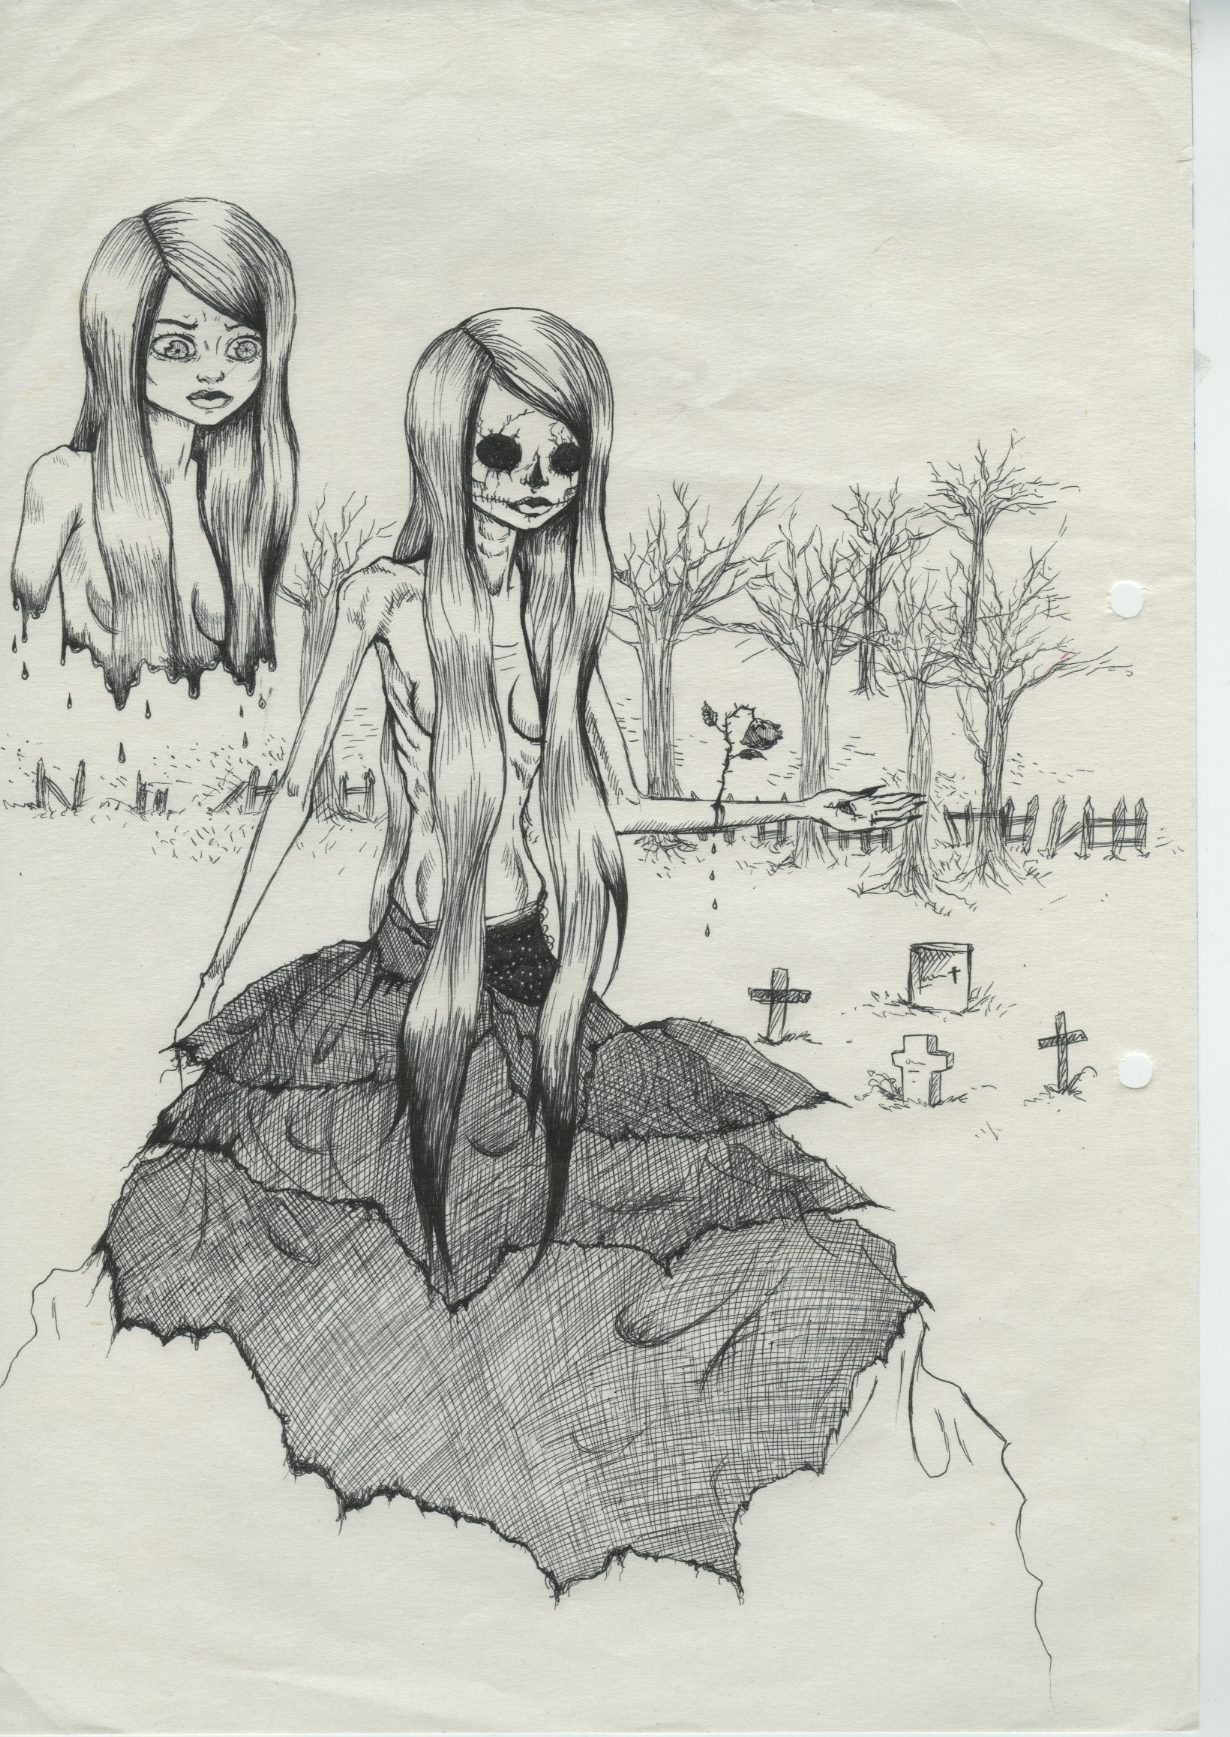 An old creepy sketch